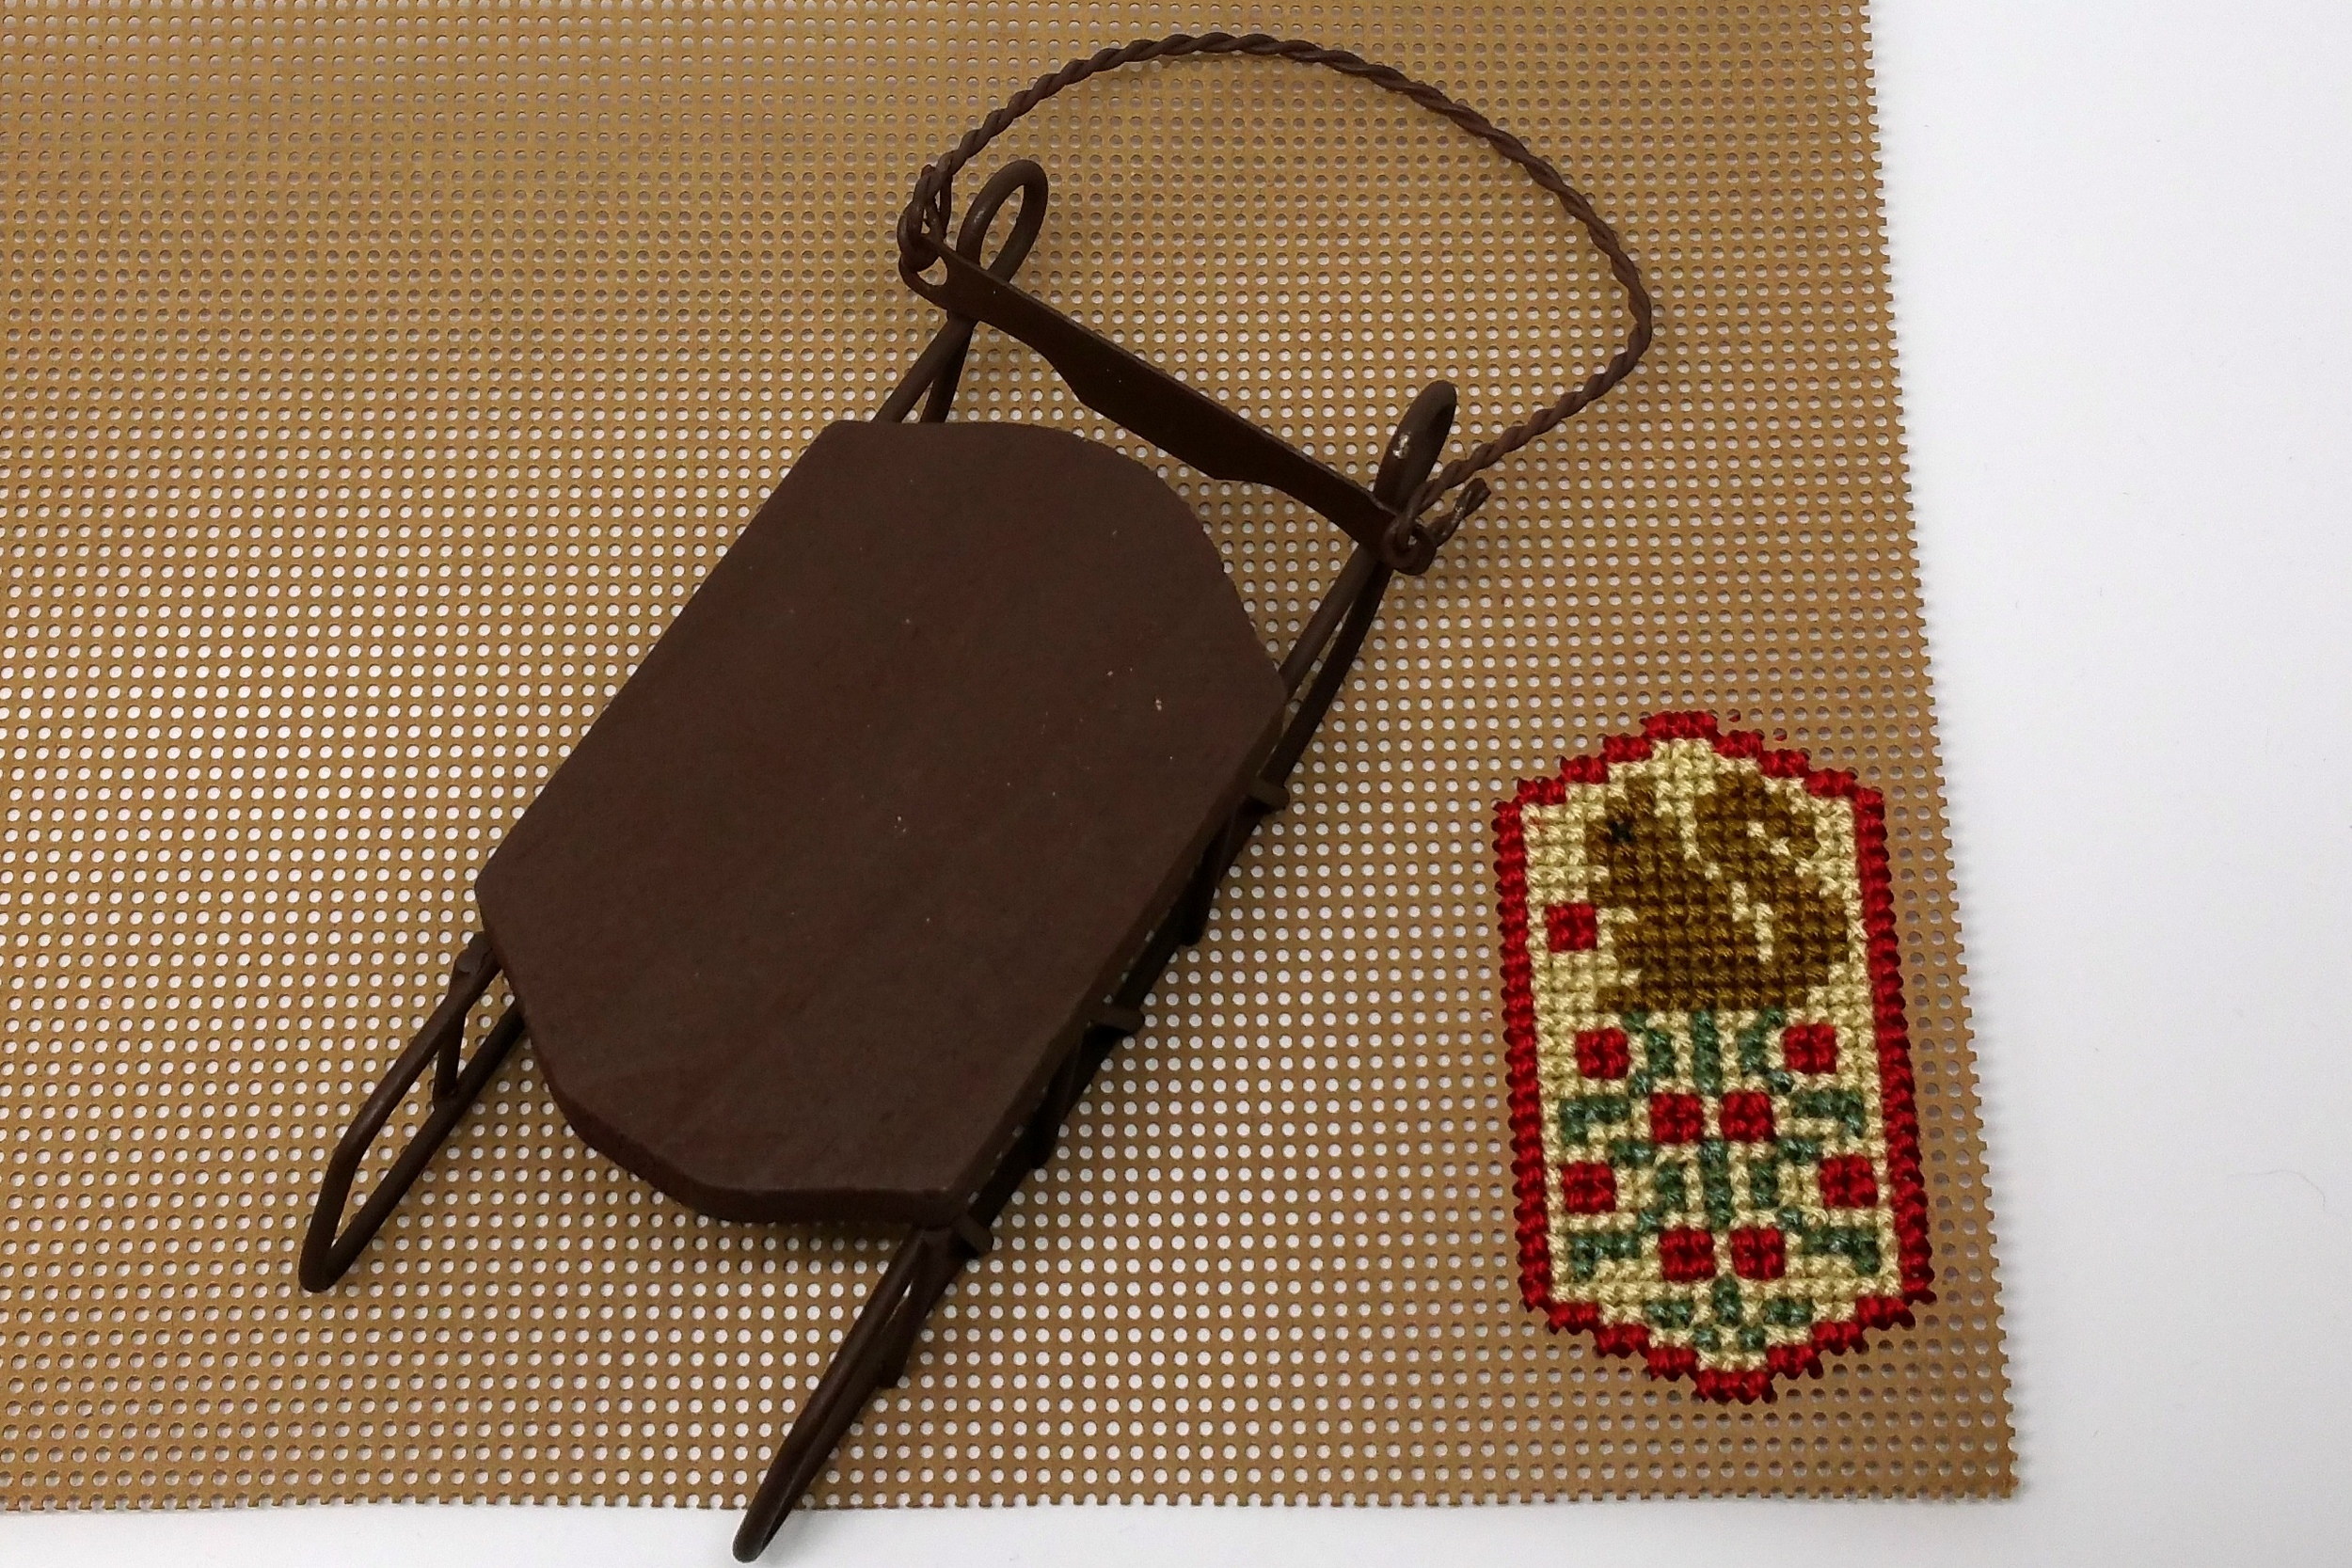 completed stitching with sled